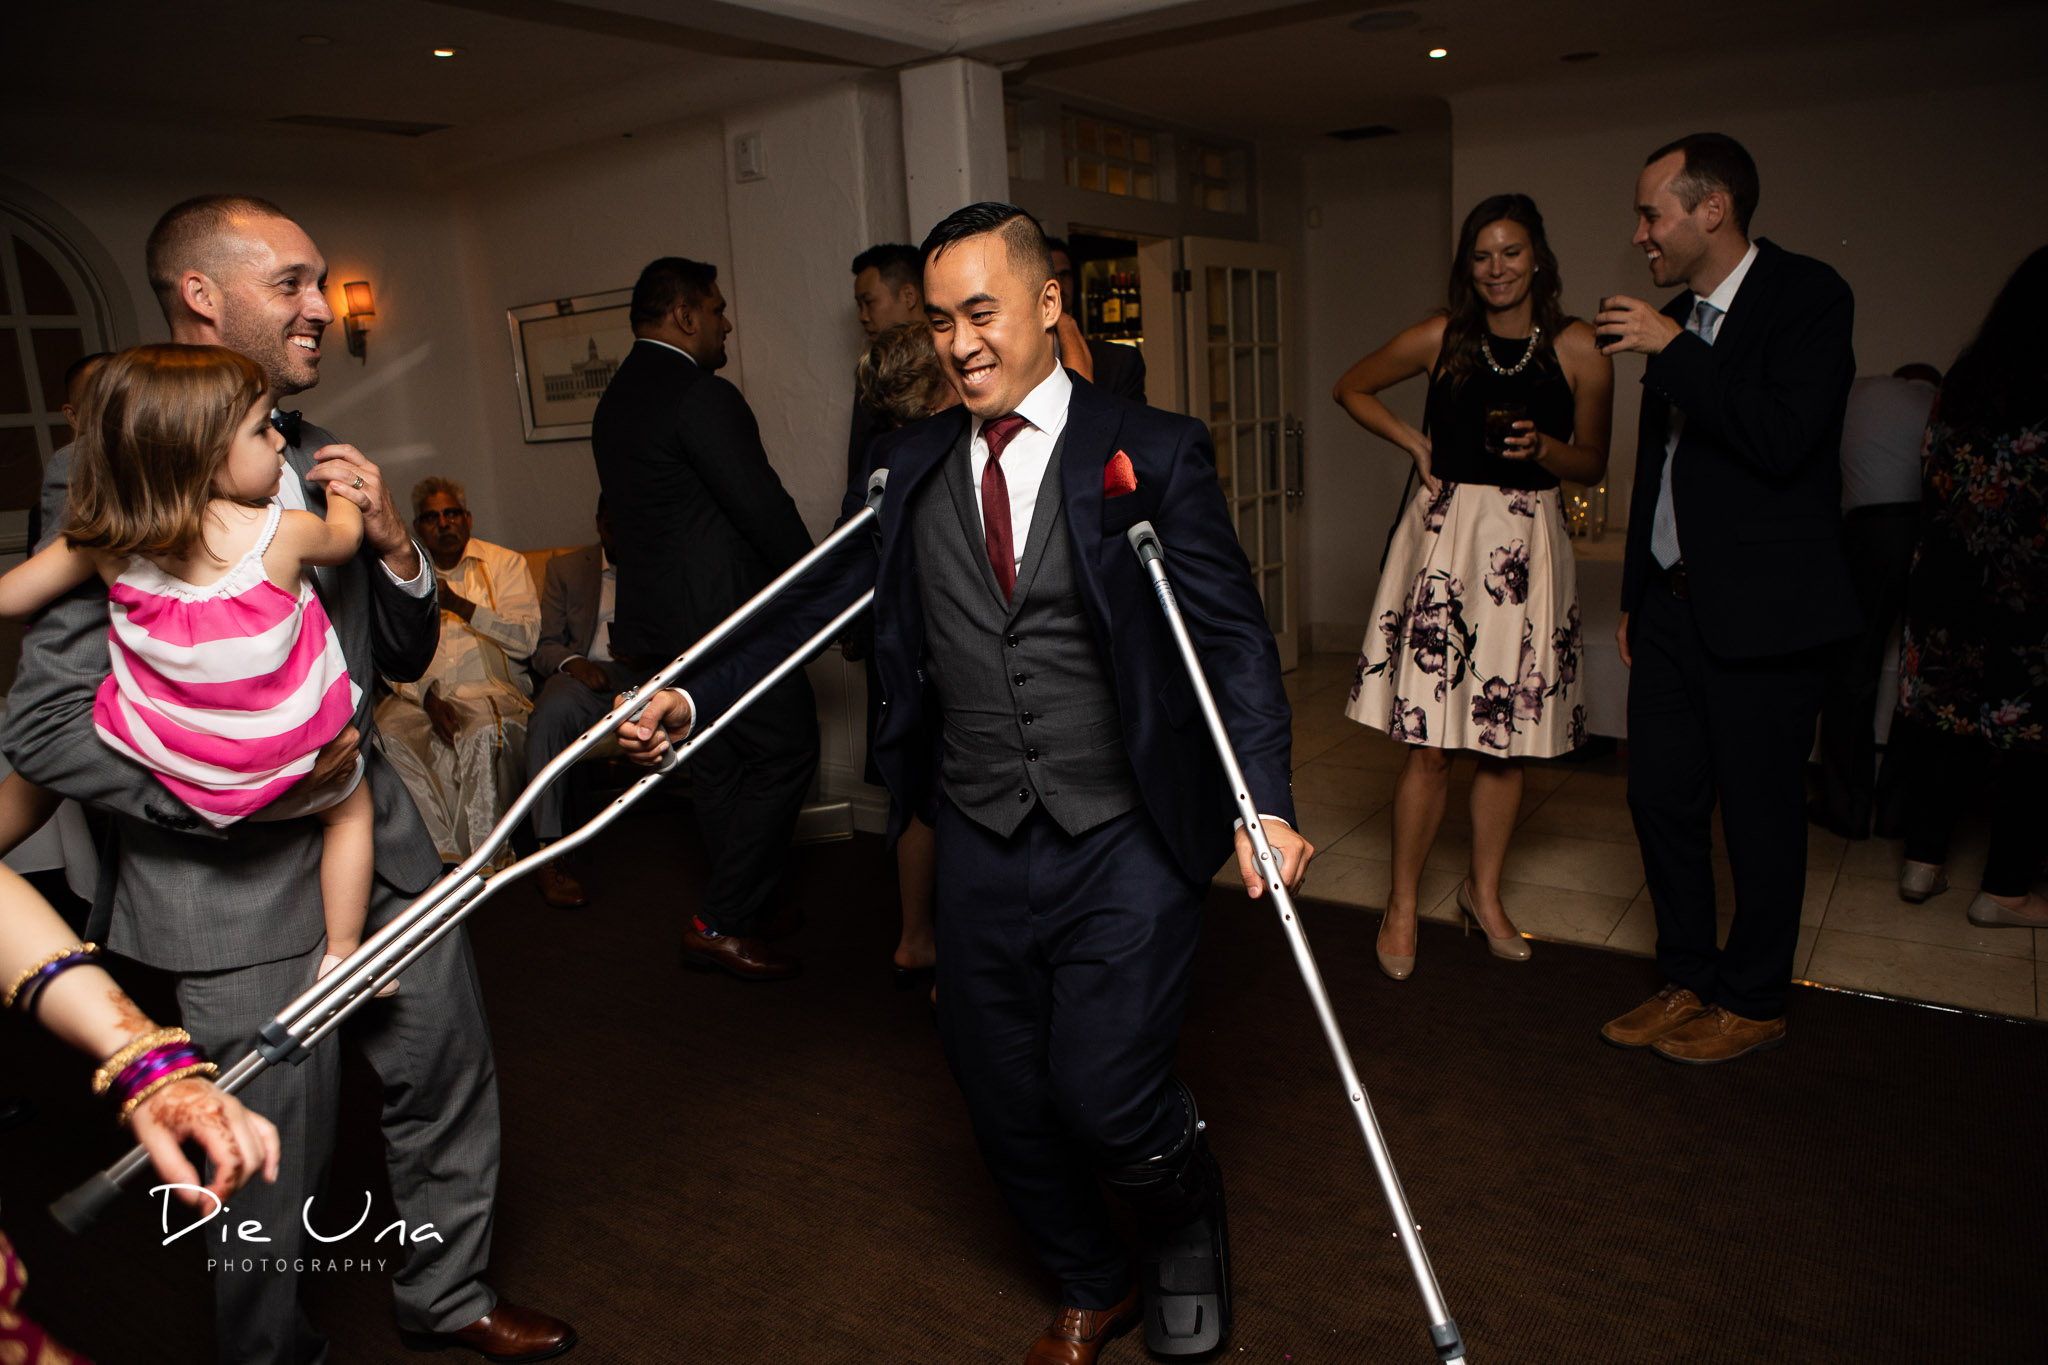 groom crutch dancing during reception.jpg